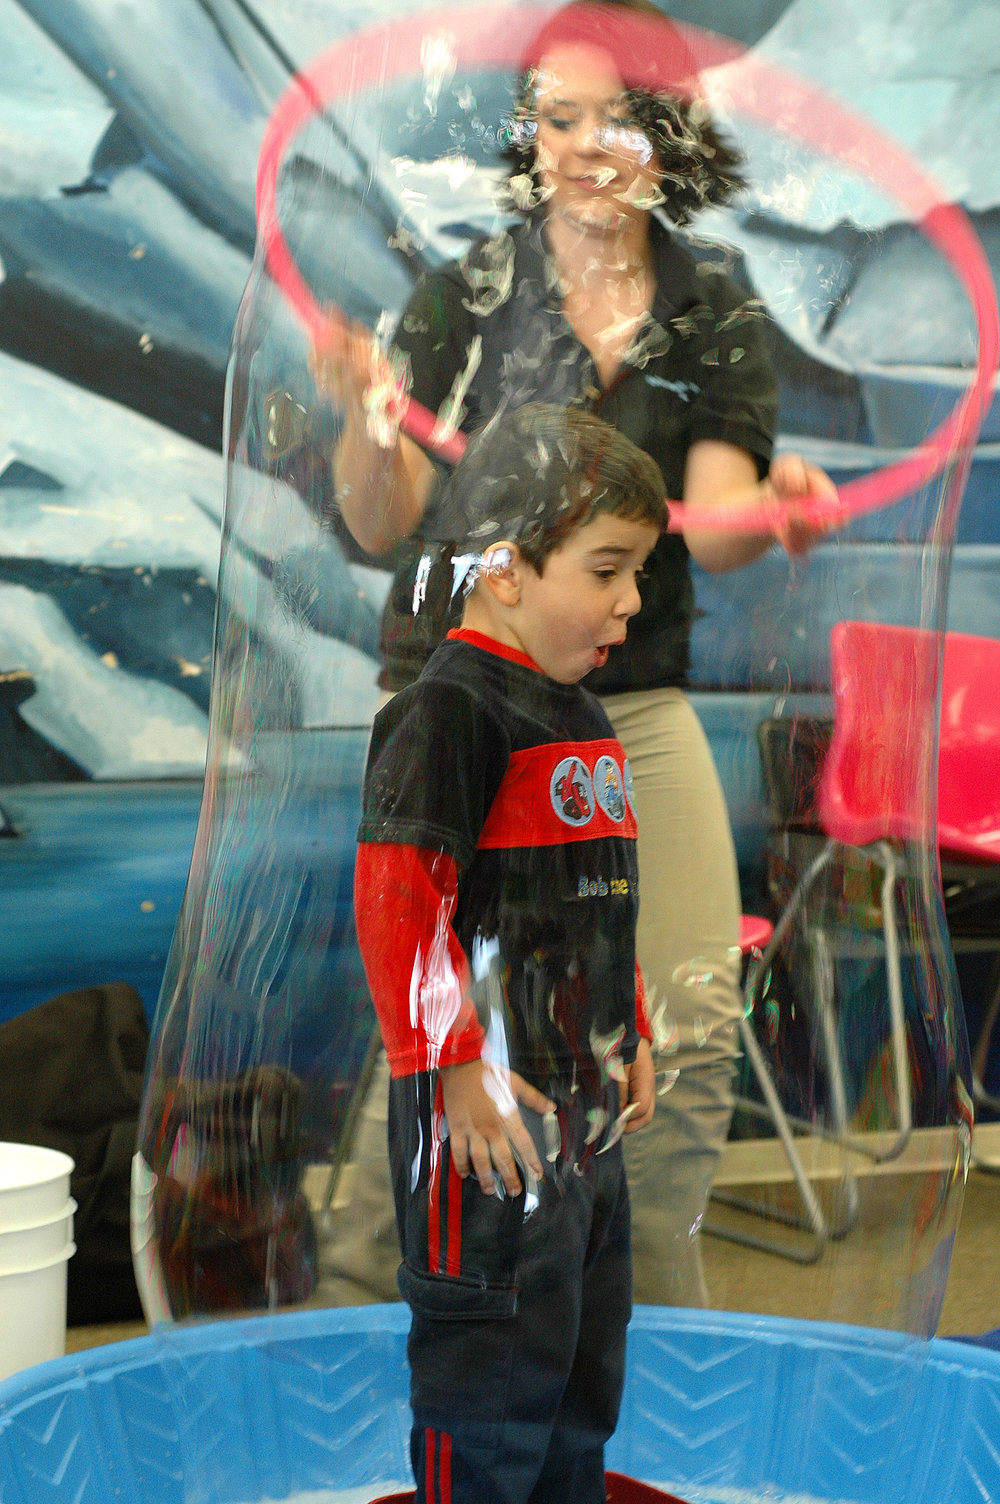 boy in bubble marcy.jpg